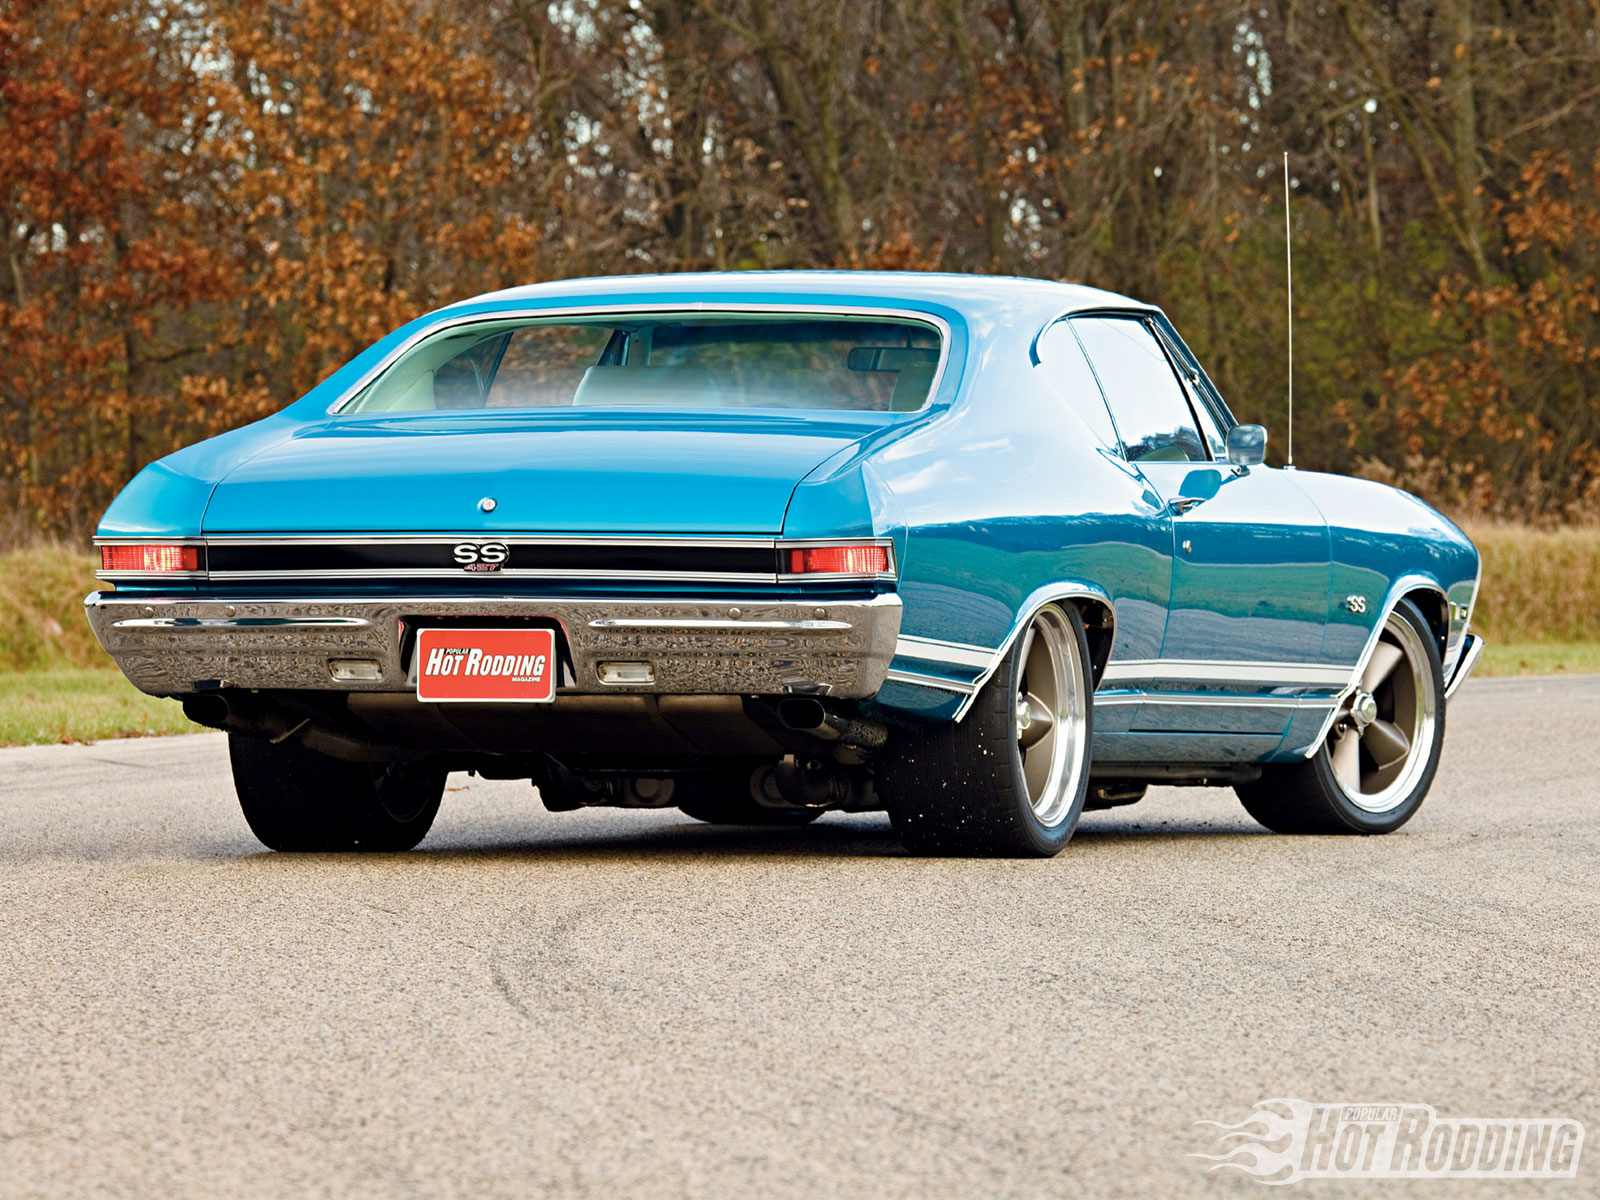 1968 Chevy Chevelle SS 900 h.p. Wallpaper and Background ...